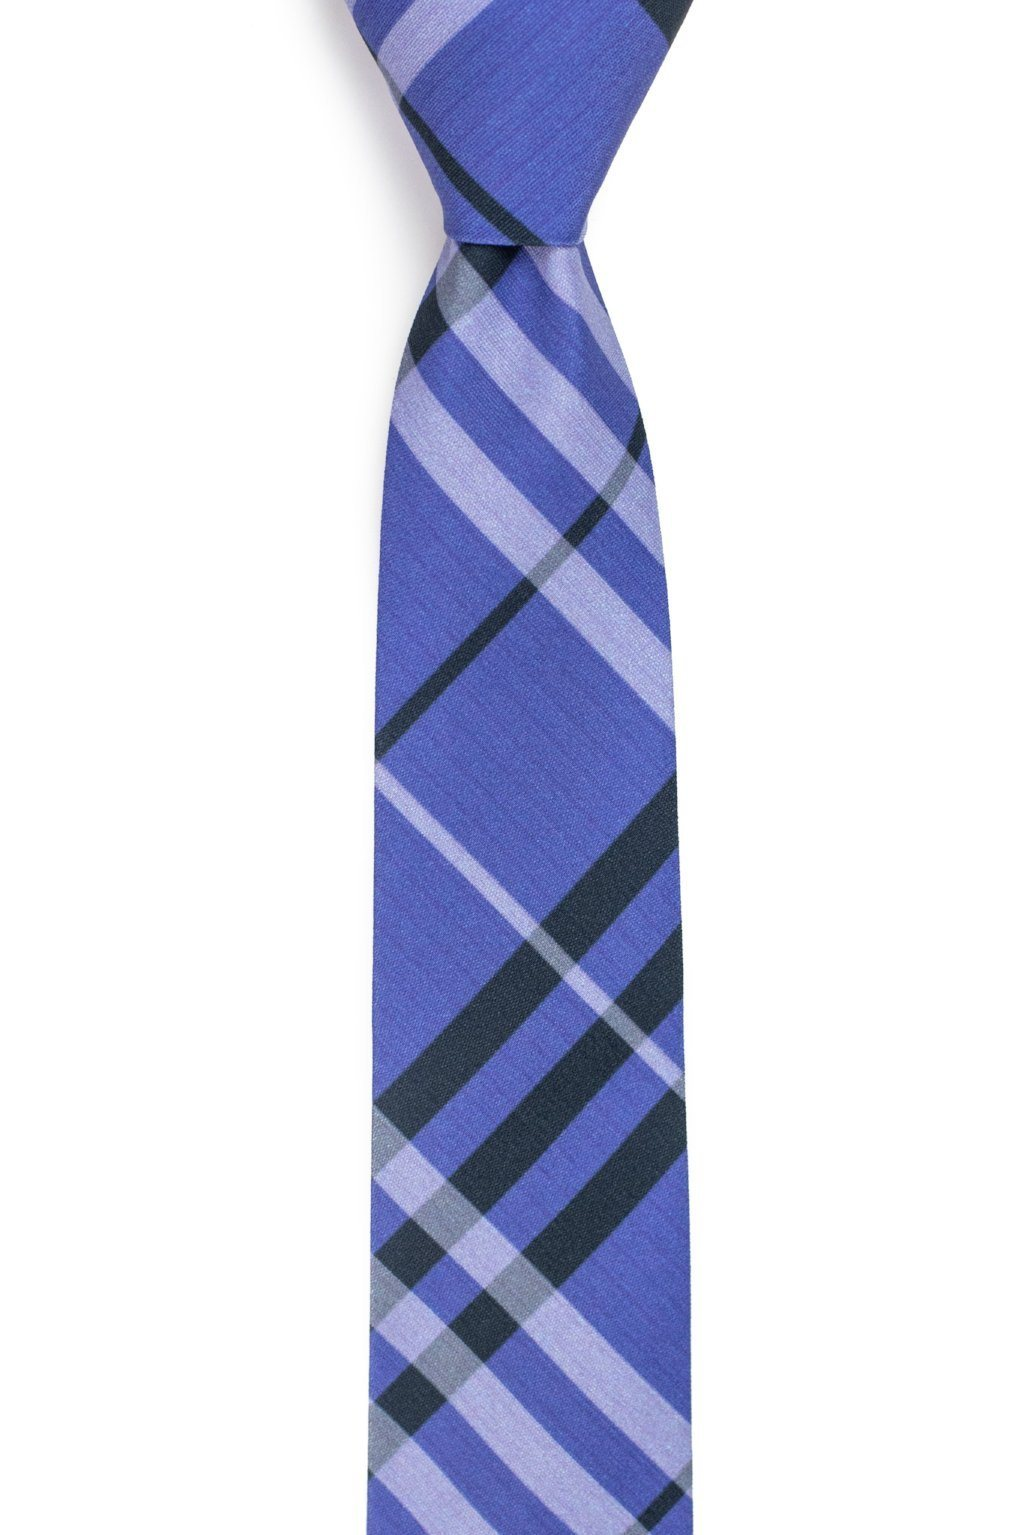 Frasier - Tough Tie